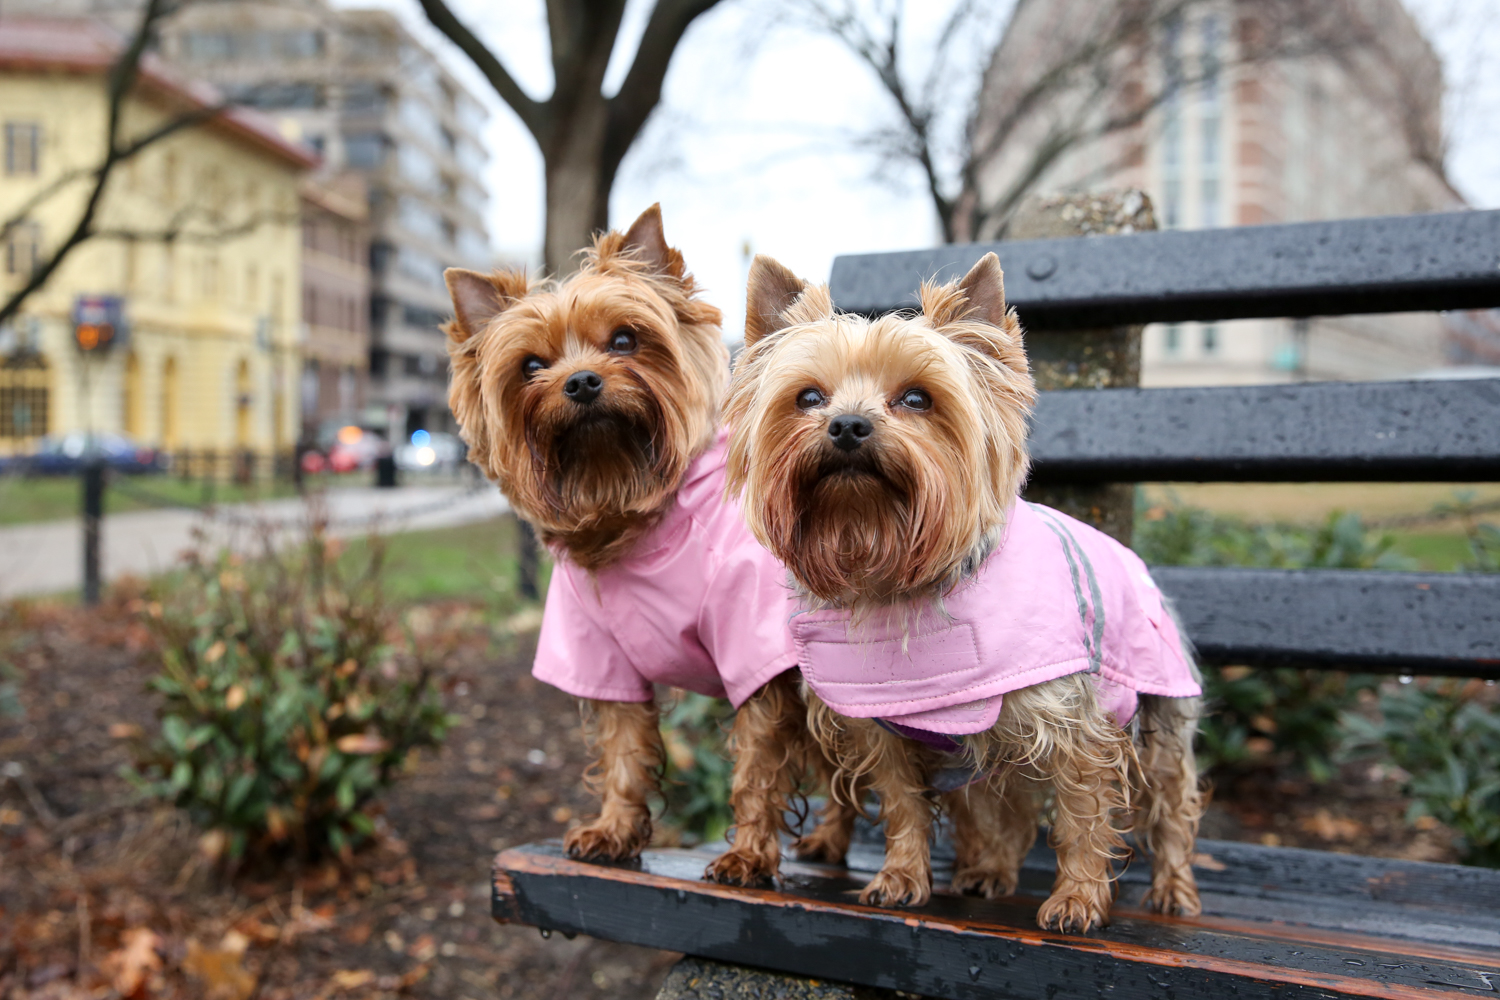 Meet Sophia and Izzy Bear, 5-year-old and 3-year-old Yorkshire Terrier sisters.{&amp;nbsp;} Sophia and Izzy's mom has grown up around Yorkies since she was 11, and she found both of her beautiful girls when she lived in Florida. They have adjusted well to city life, and really love being able to walk into so many of the stores and shops around D.C. -- the extra attention makes them showoff! Mom likes to jokingly refer to the girls as her &quot;therapist, Prozac, adventure seeing buddies and best friends all wrapped into one!&quot; After creating an Instagram account for Sophia and Izzy Bear (@yorkieheaven), mom realized there was a huge need for products uniquely suited to meet the needs of small dogs, and thus @smalldogofficial was born, with Sophia and Izzy Bear taking over as co-CEOs. Currently they market a comb to remove &quot;eye gunk&quot; on little dogs. If you or someone you know has a pet you'd like featured, email us at dcrefined@gmail.com or tag #DCRUFFined and your furbaby could be the next spotlighted! (Image: Amanda Andrade-Rhoades/ DC Refined)<p></p>